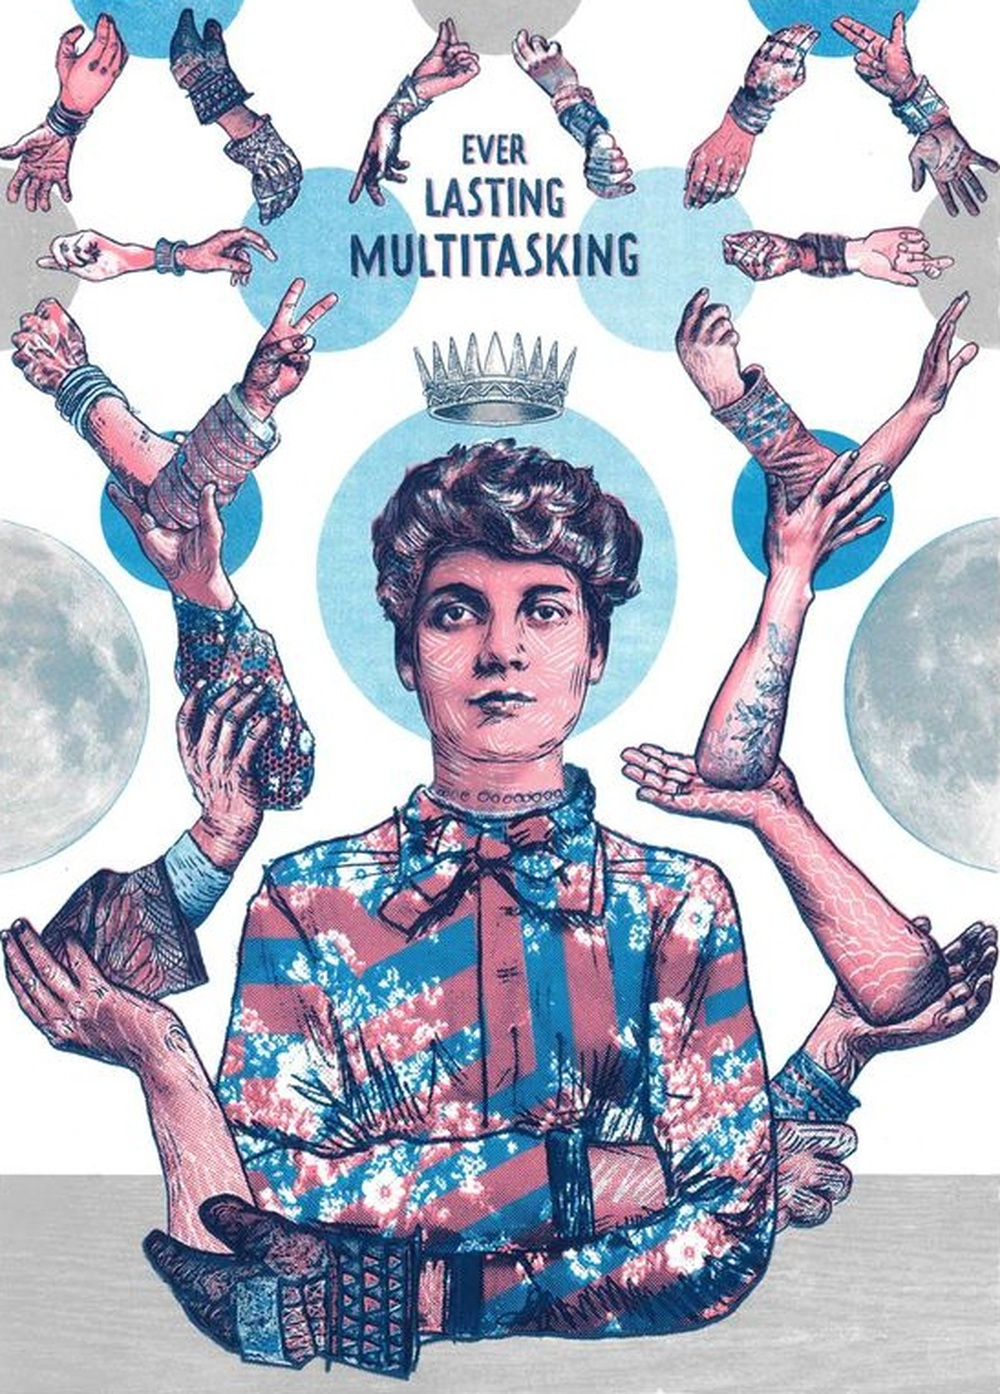 Thinking multitasking equals performance is an illusion